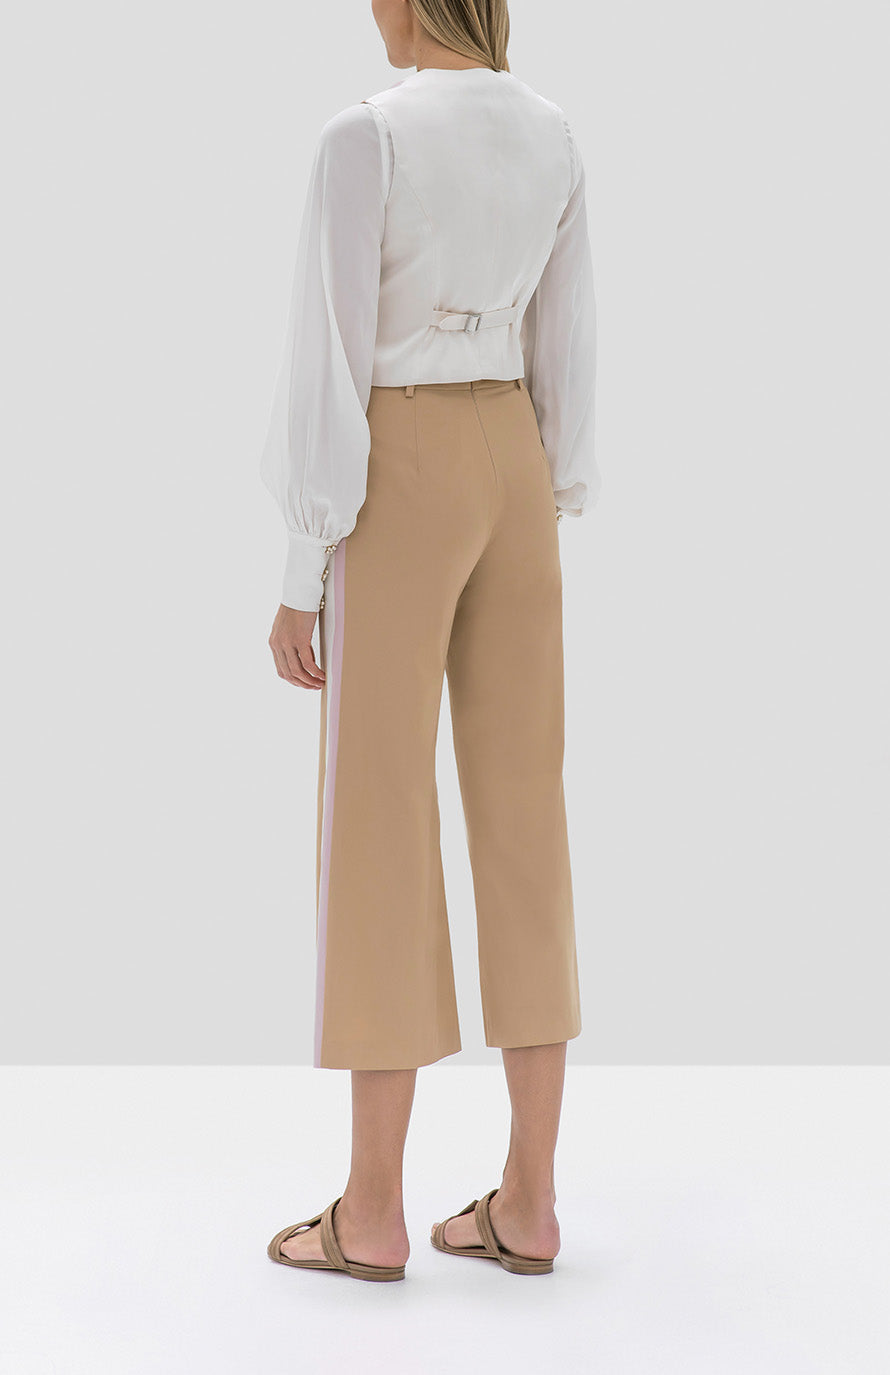 Alexis Aruca Top in White and Lennox Pant in Tan Striped from the Pre Fall 2019 Ready To Wear Collection - Rear View